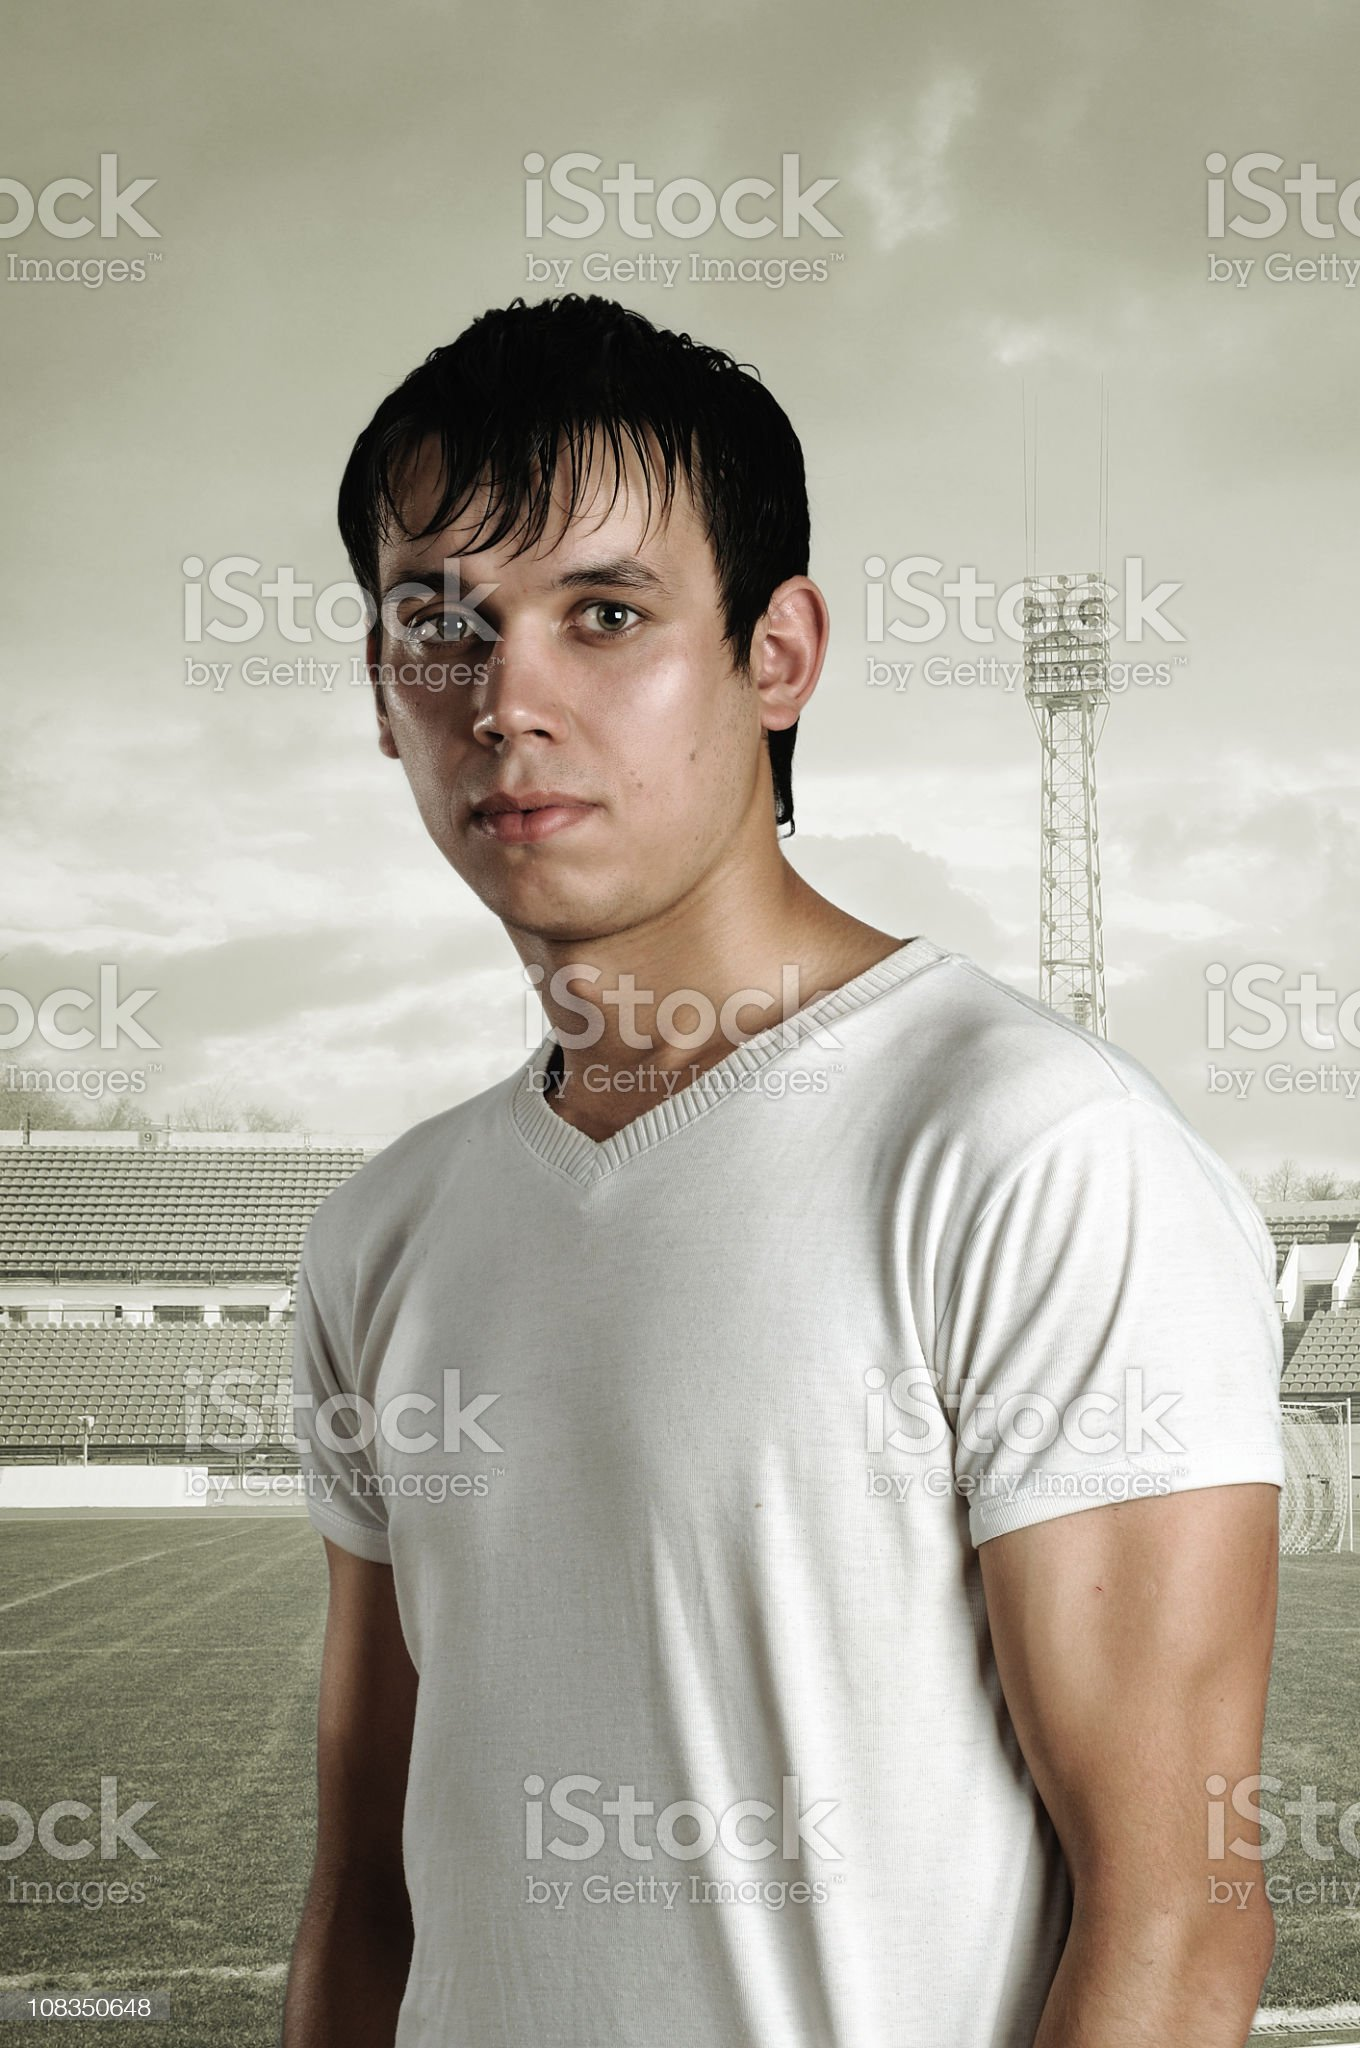 football man royalty-free stock photo